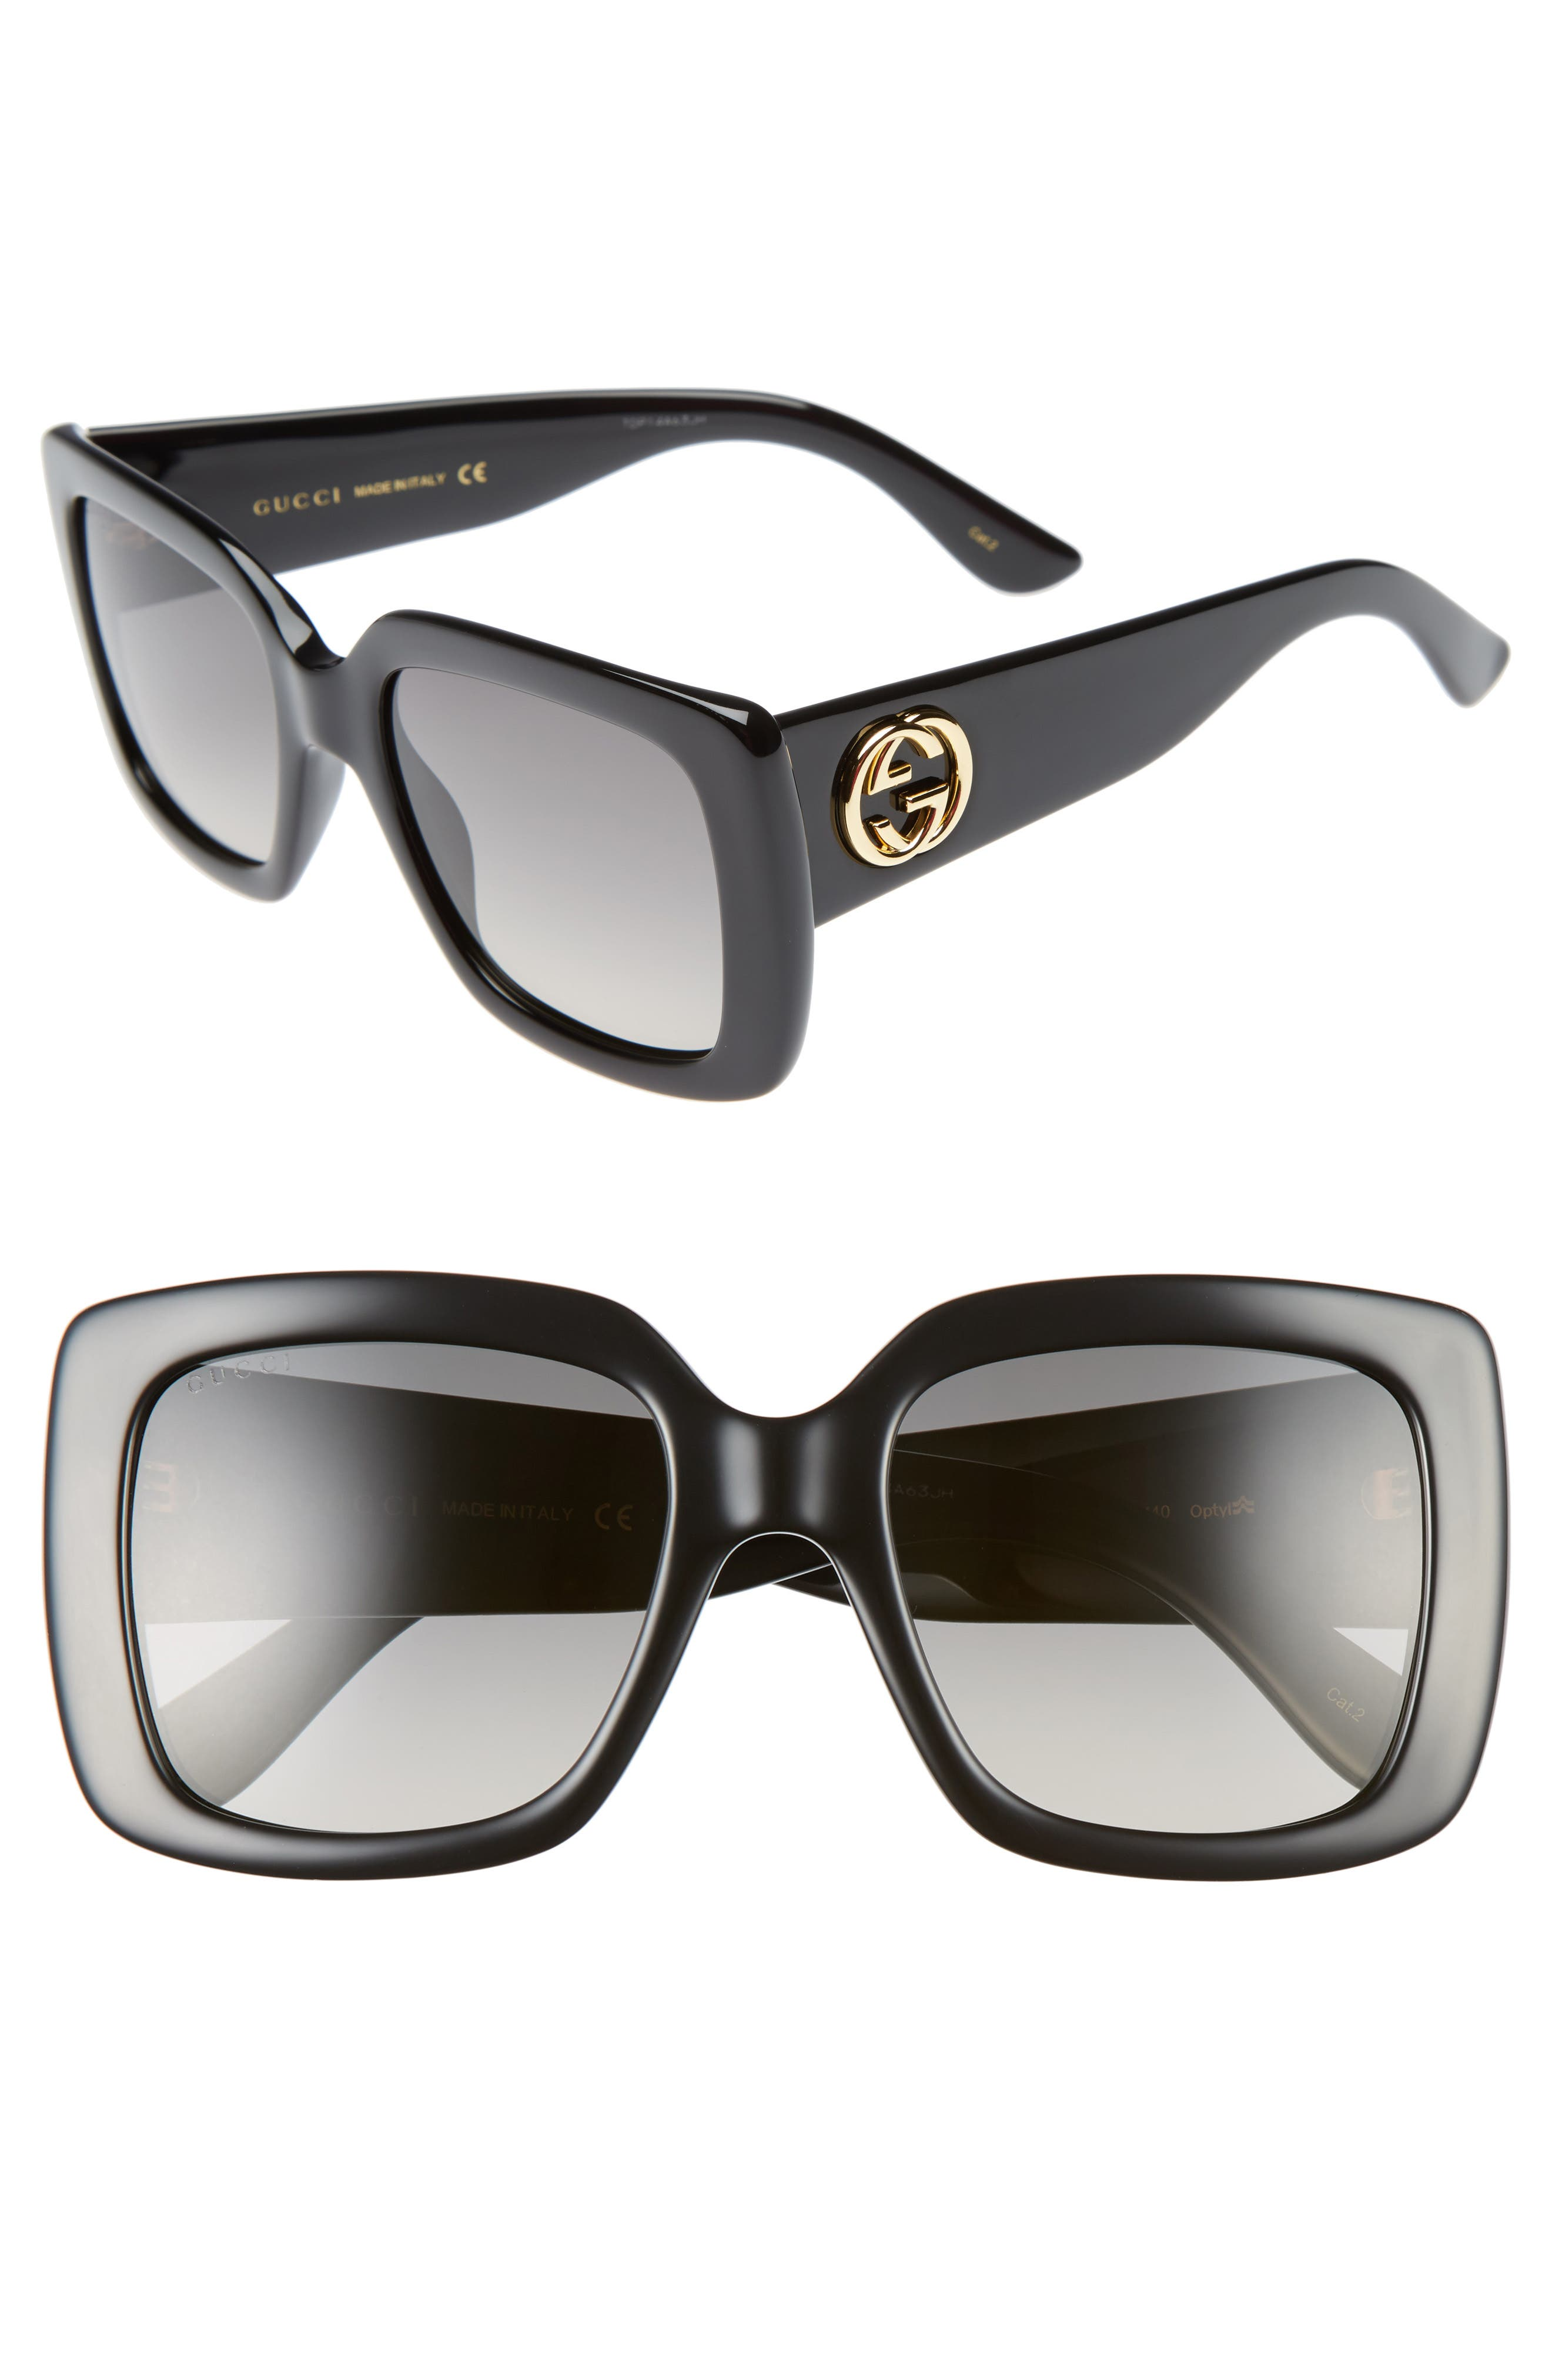 GUCCI, 53mm Square Sunglasses, Main thumbnail 1, color, BLACK/ GREY